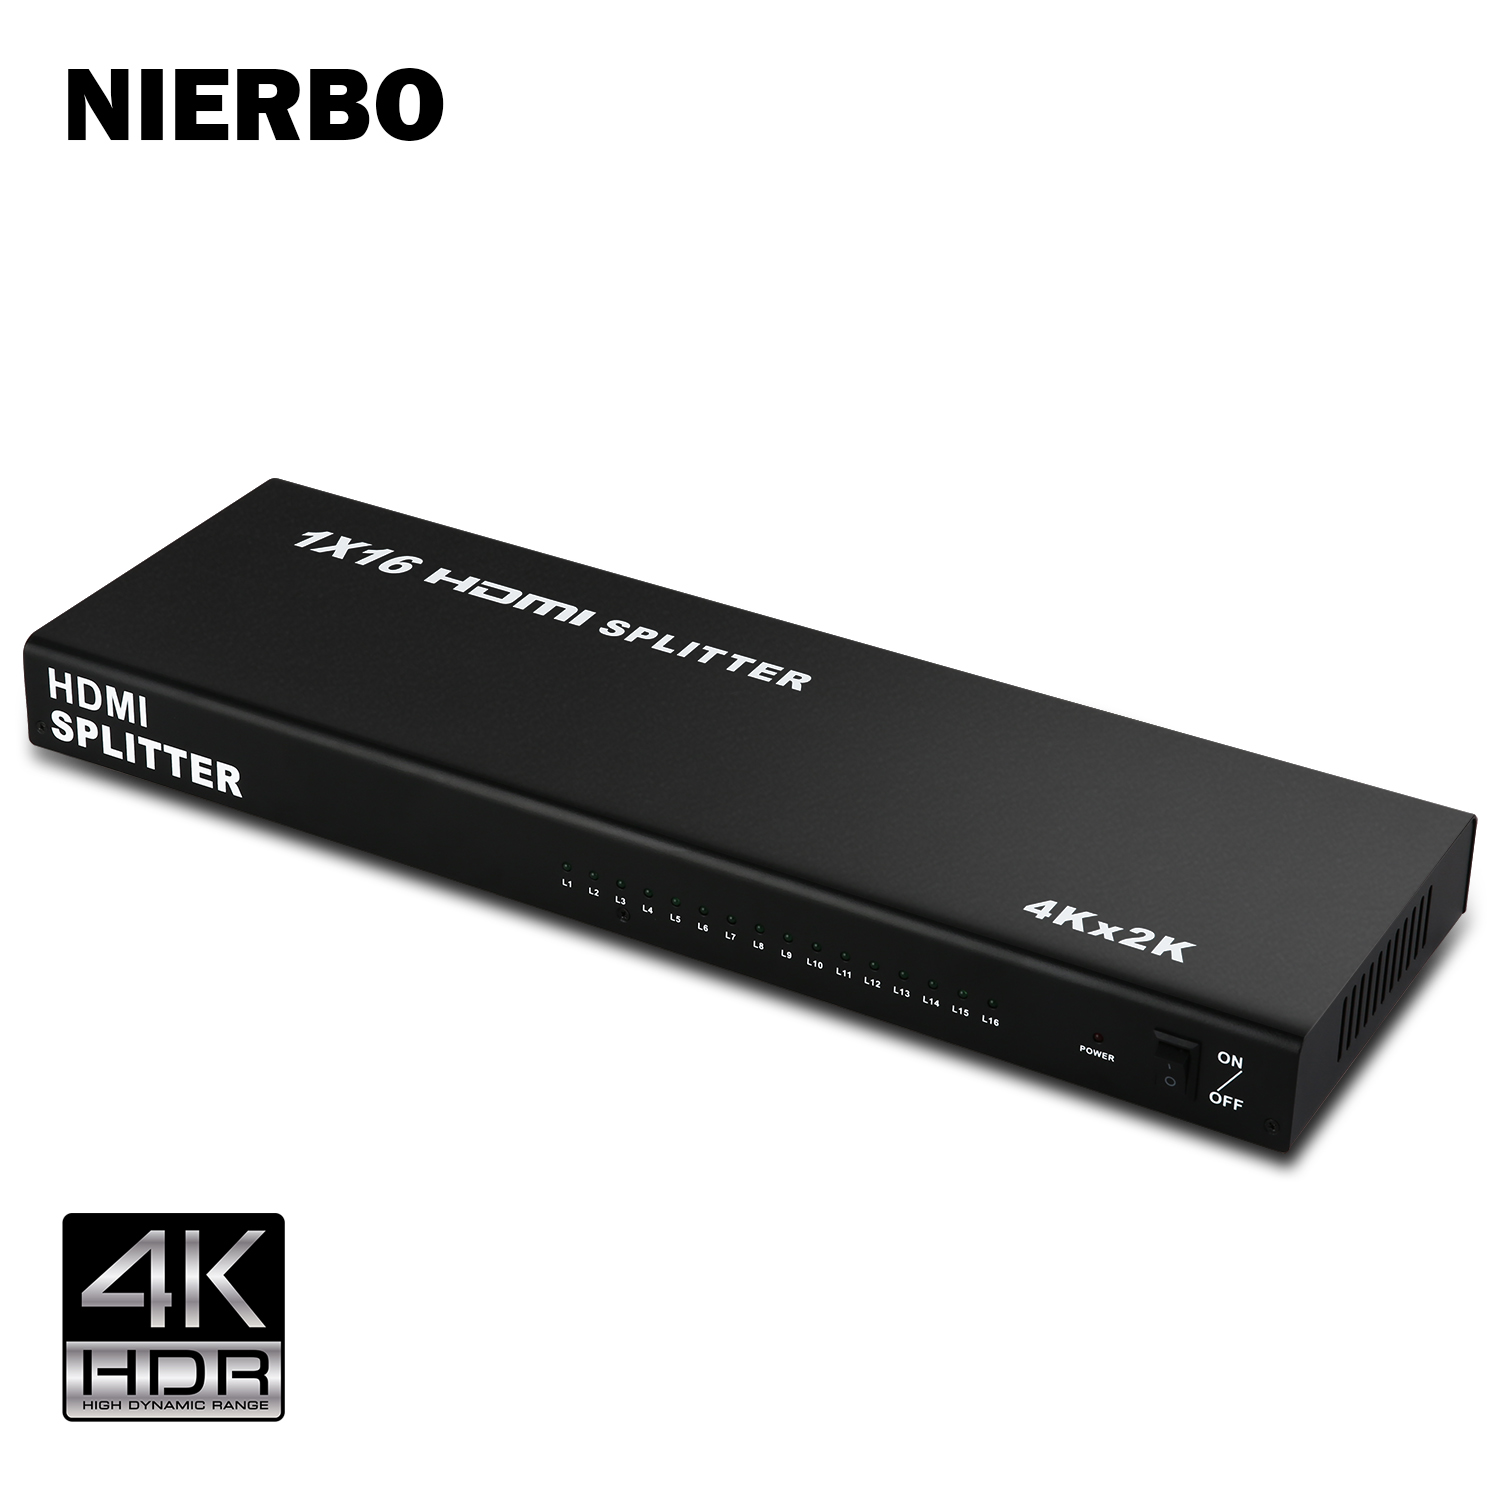 NIERBO HDMI Splitter 1x16 4K Duplicator 1 Input 16 Output Switch 1080p Full  HD 3D for PS4 PS3 XboX Chromecast DVD Blu-Ray Decoder Satellite Receiver